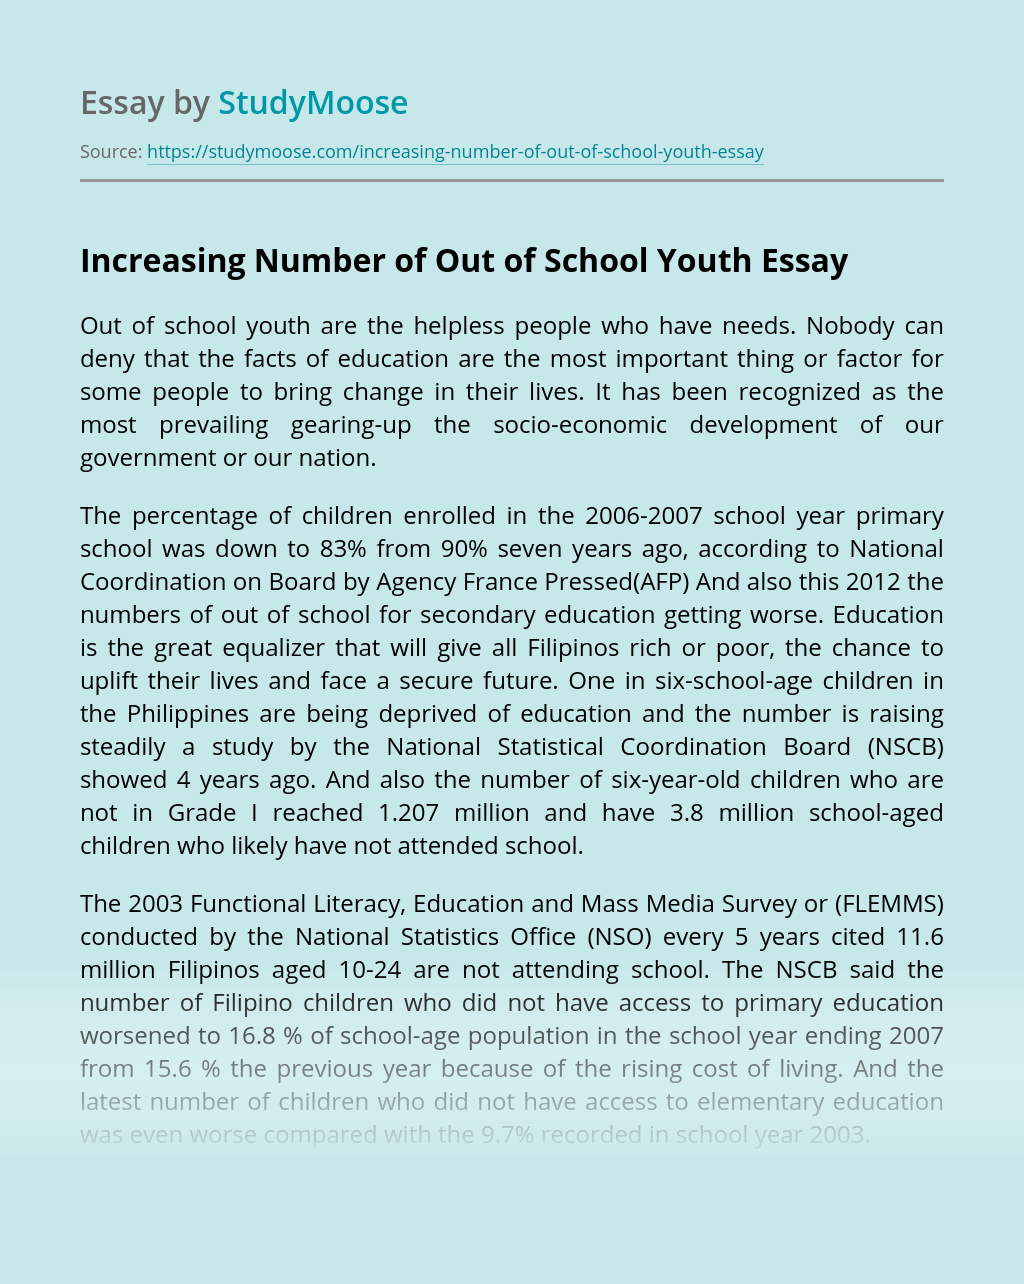 Increasing Number of Out of School Youth